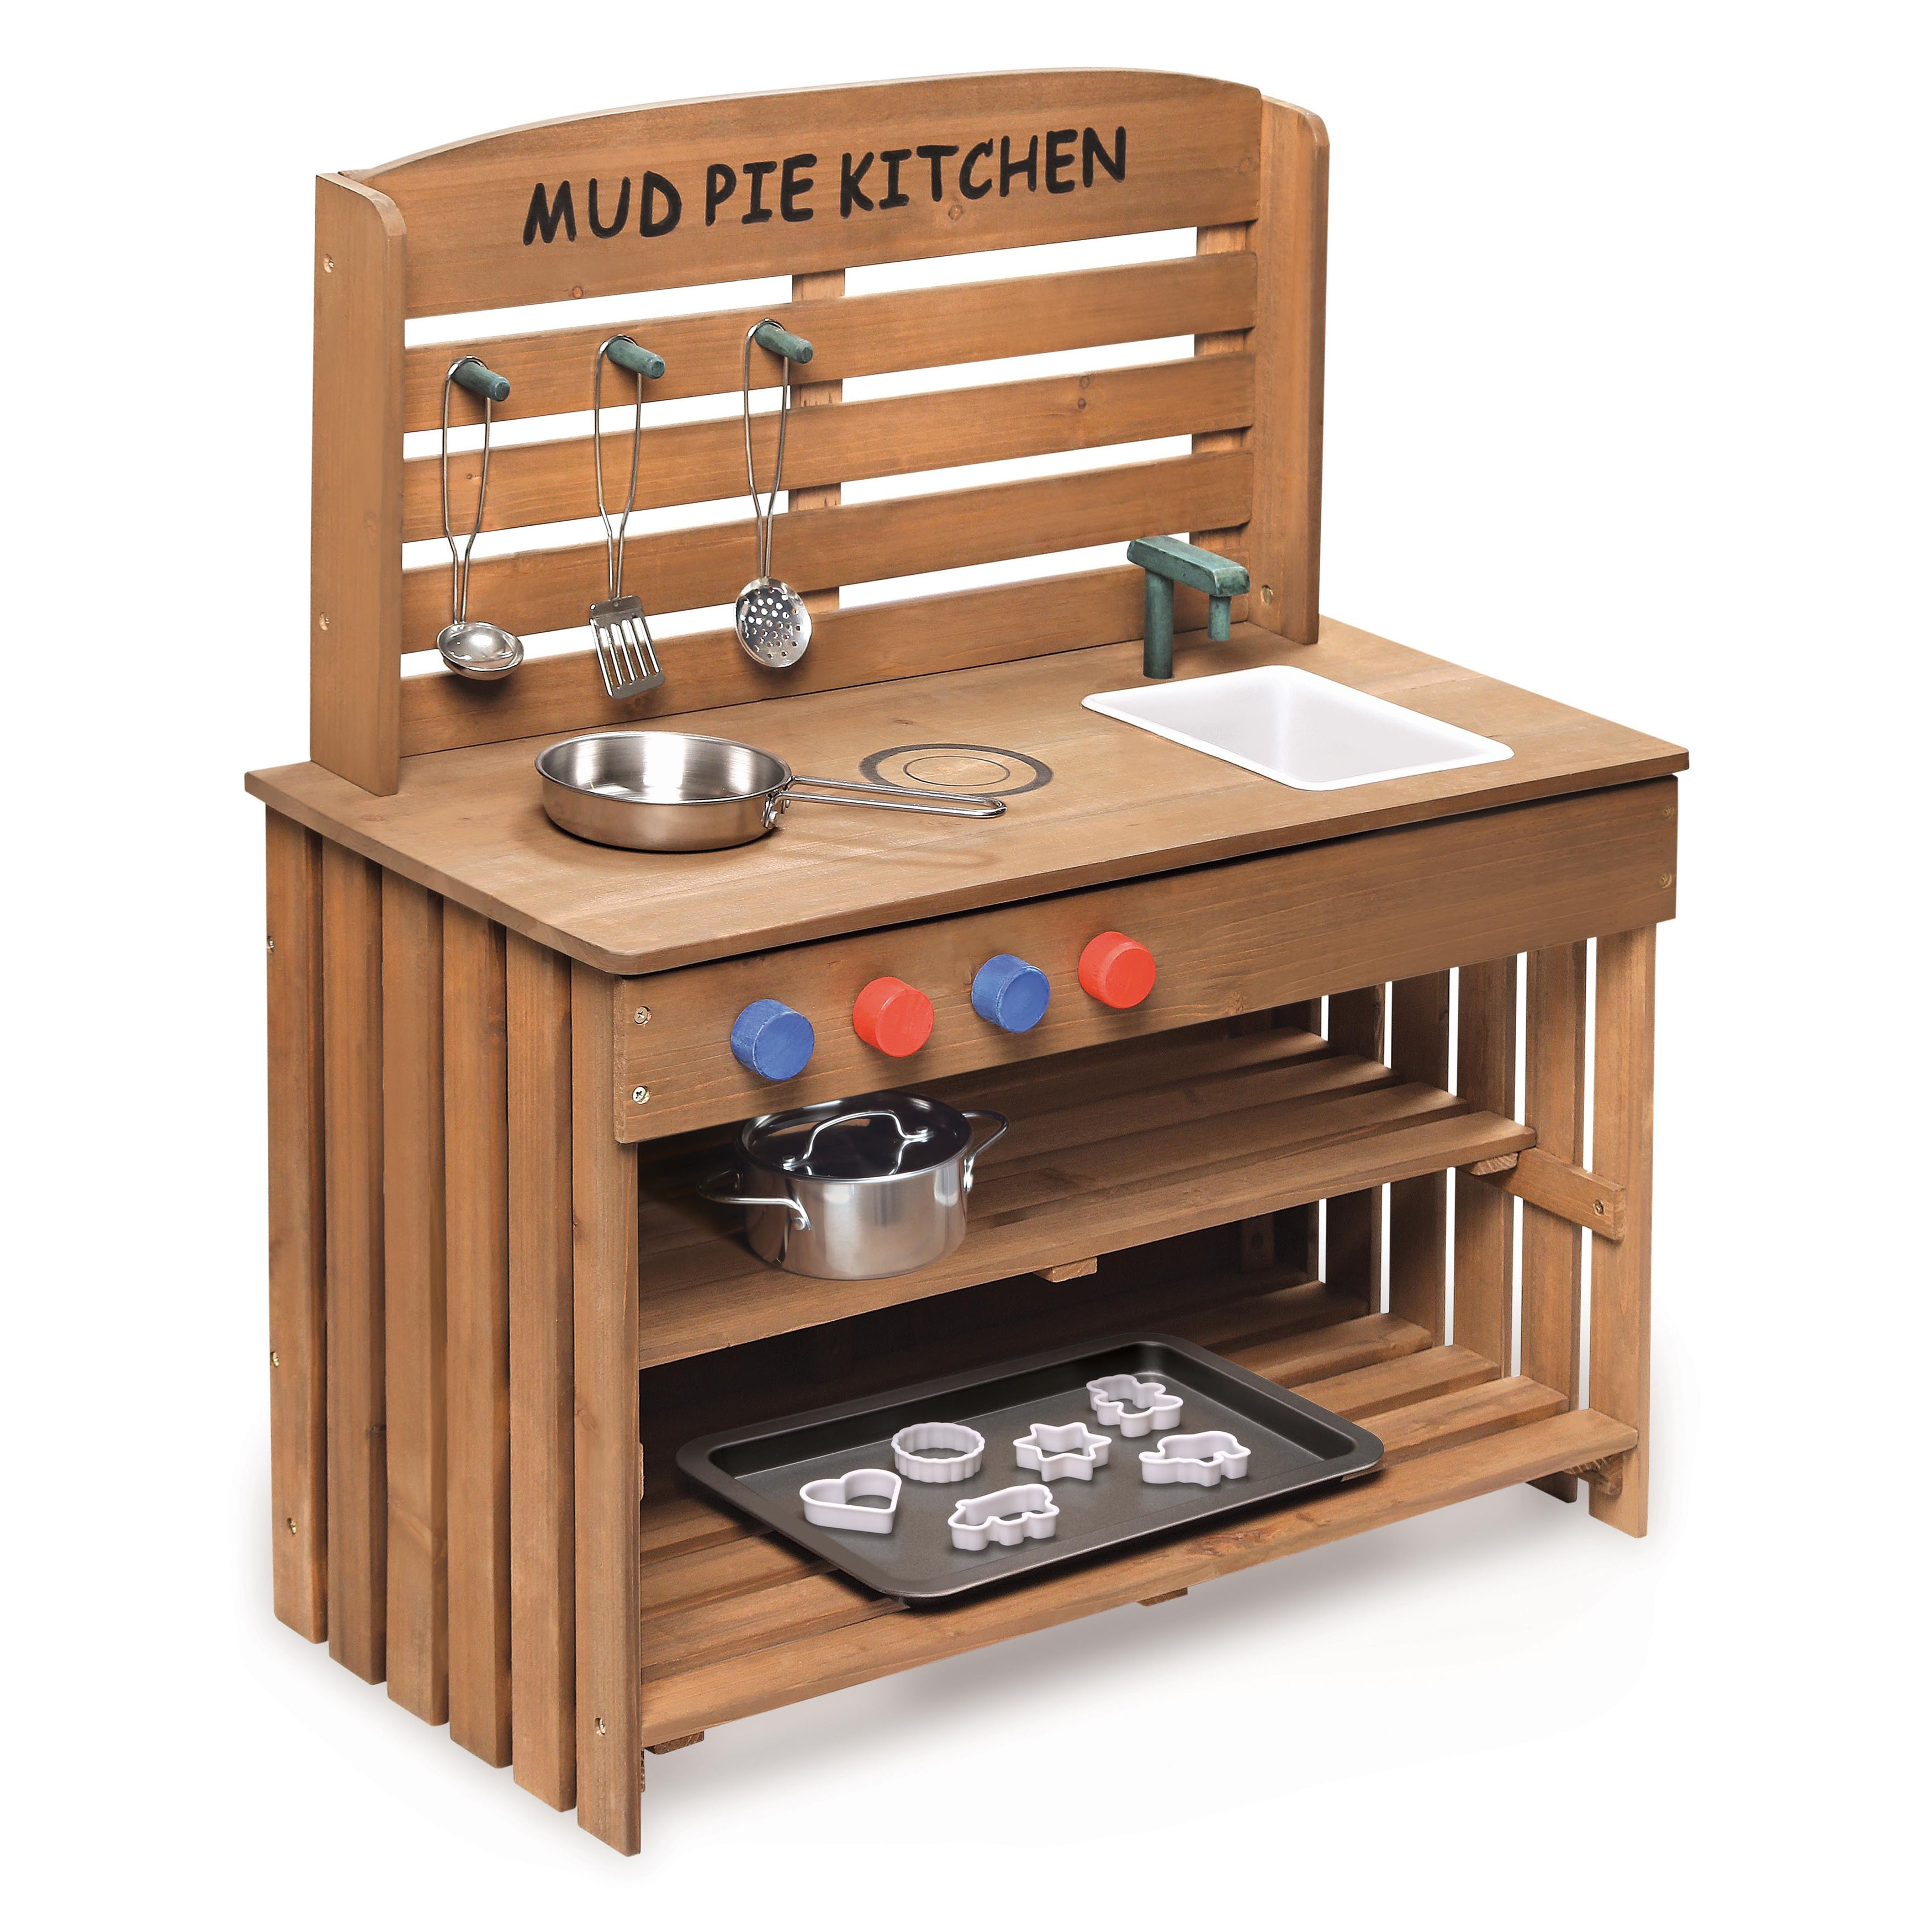 Charmant Outdoor Chef Mud Pie Kitchen With Cooking Accessories